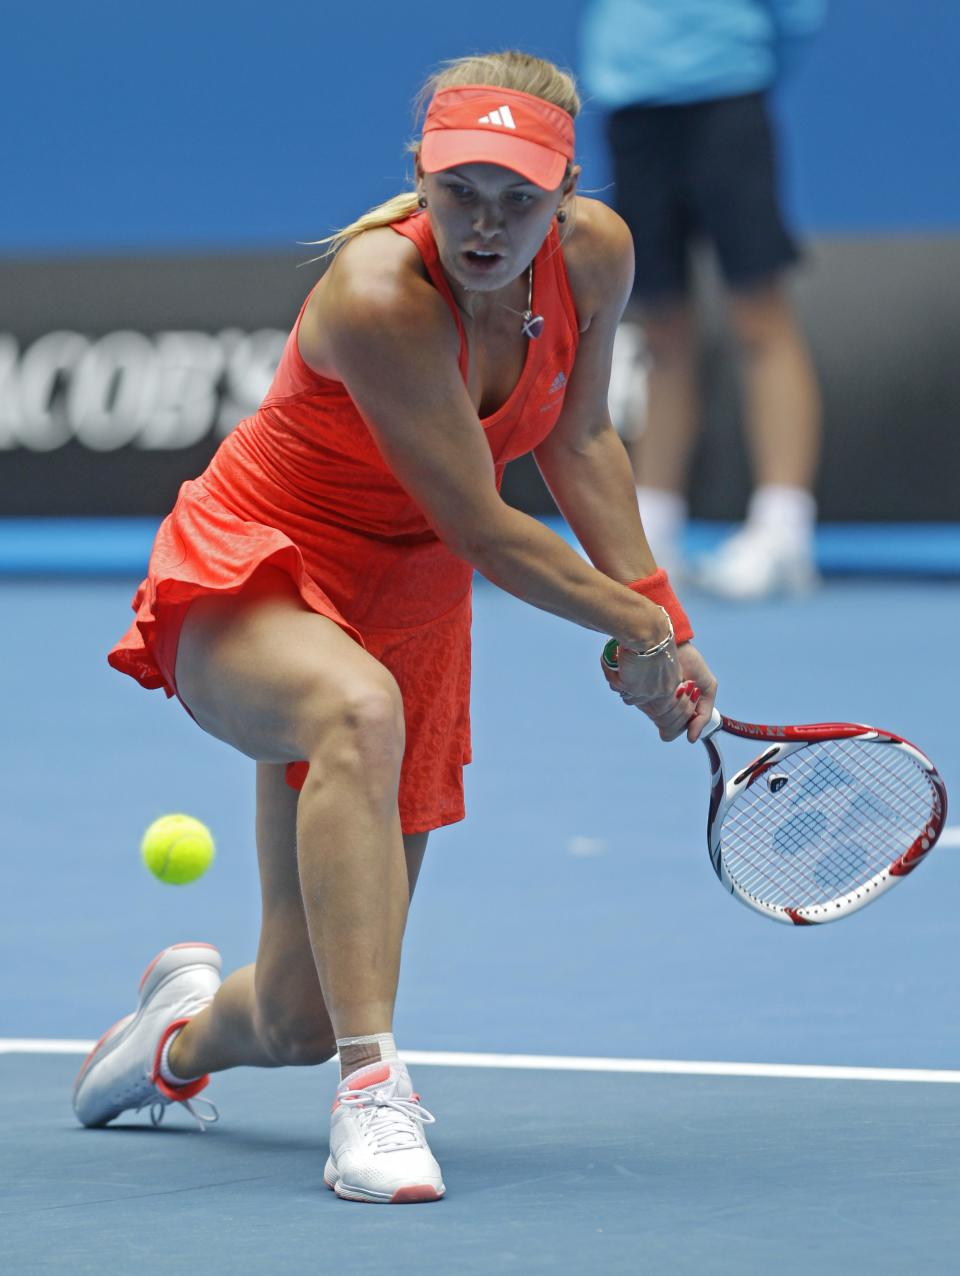 Denmark's Caroline Wozniacki makes a backhand return ro Romania's Monica Niculescu during their third round match at the Australian Open tennis championship, in Melbourne, Australia, Friday, Jan. 20, 2012. (AP Photo/Rick Rycroft)